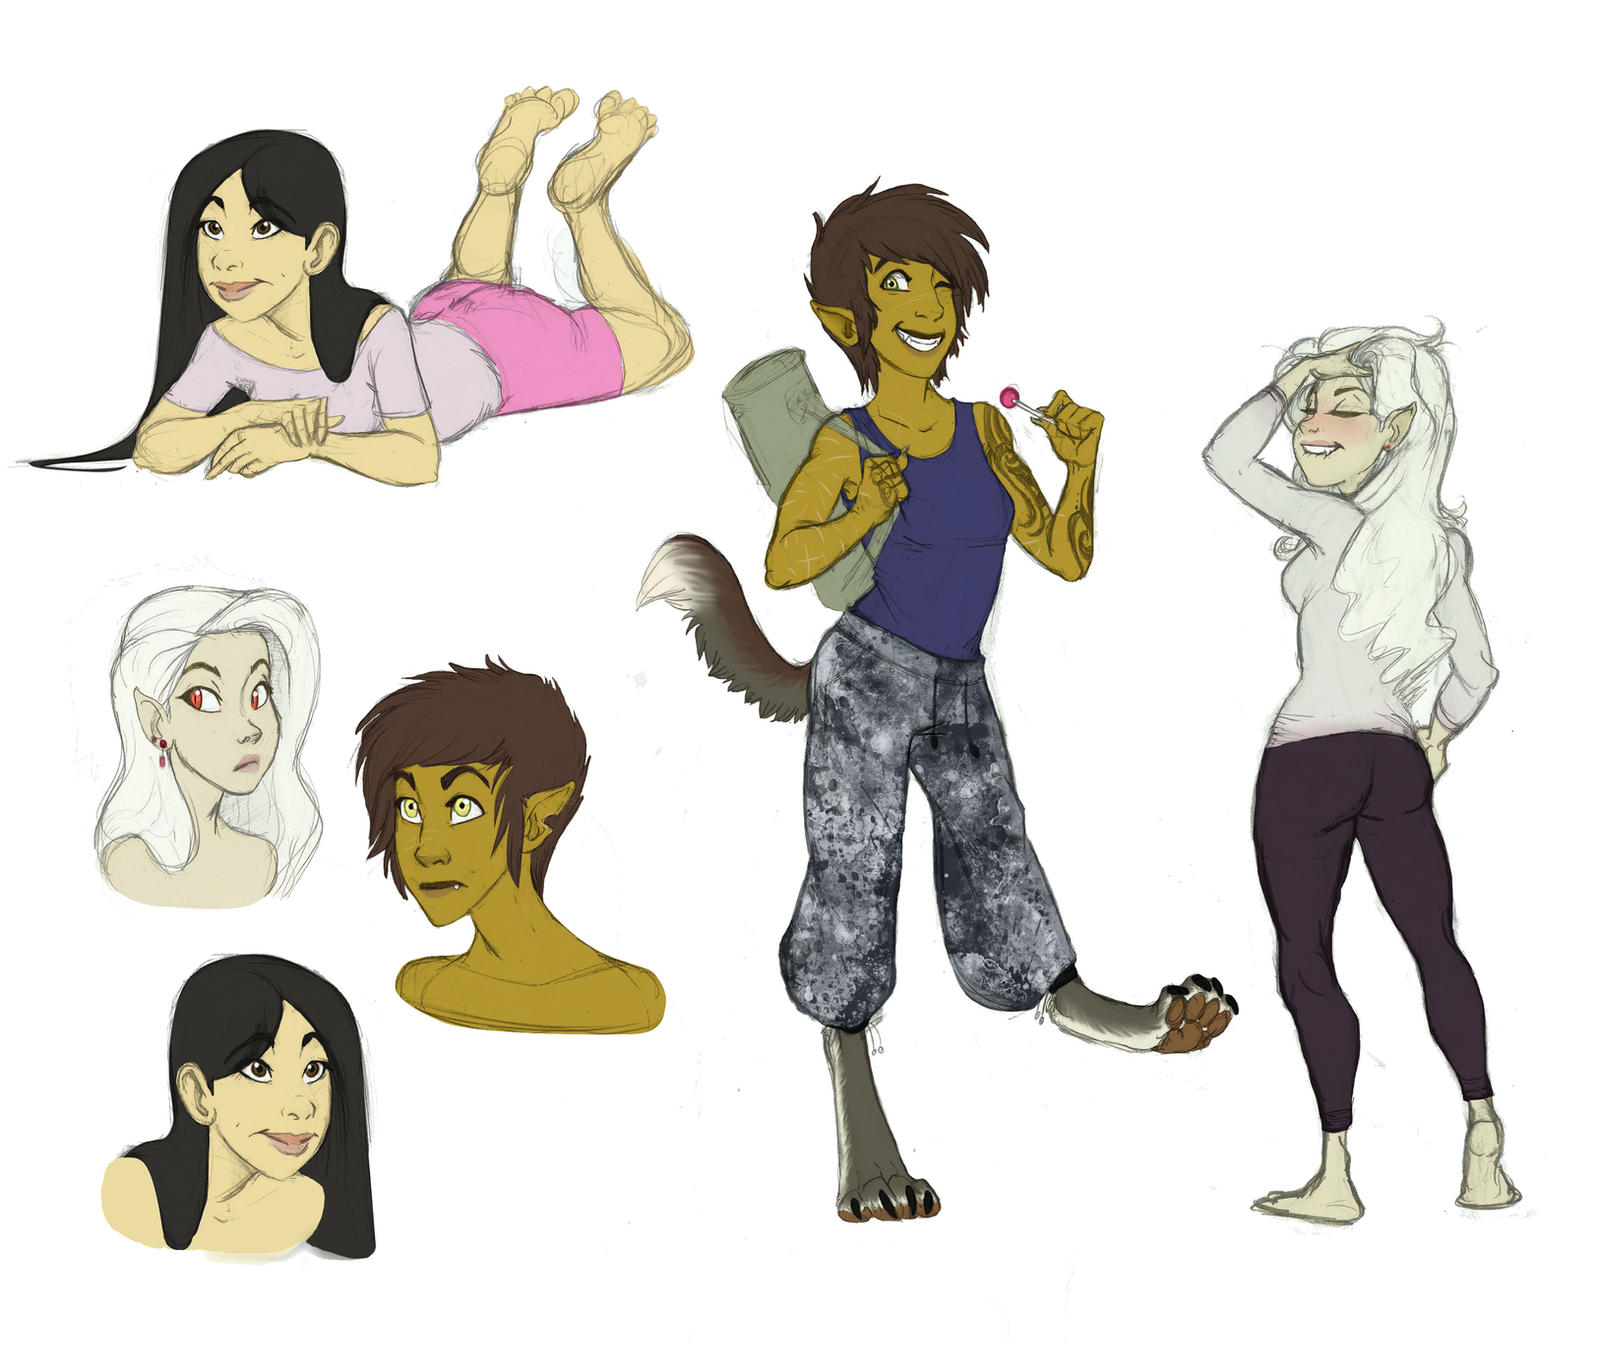 Book Character Design Tips : Original characters sketchdump by earthsong on deviantart